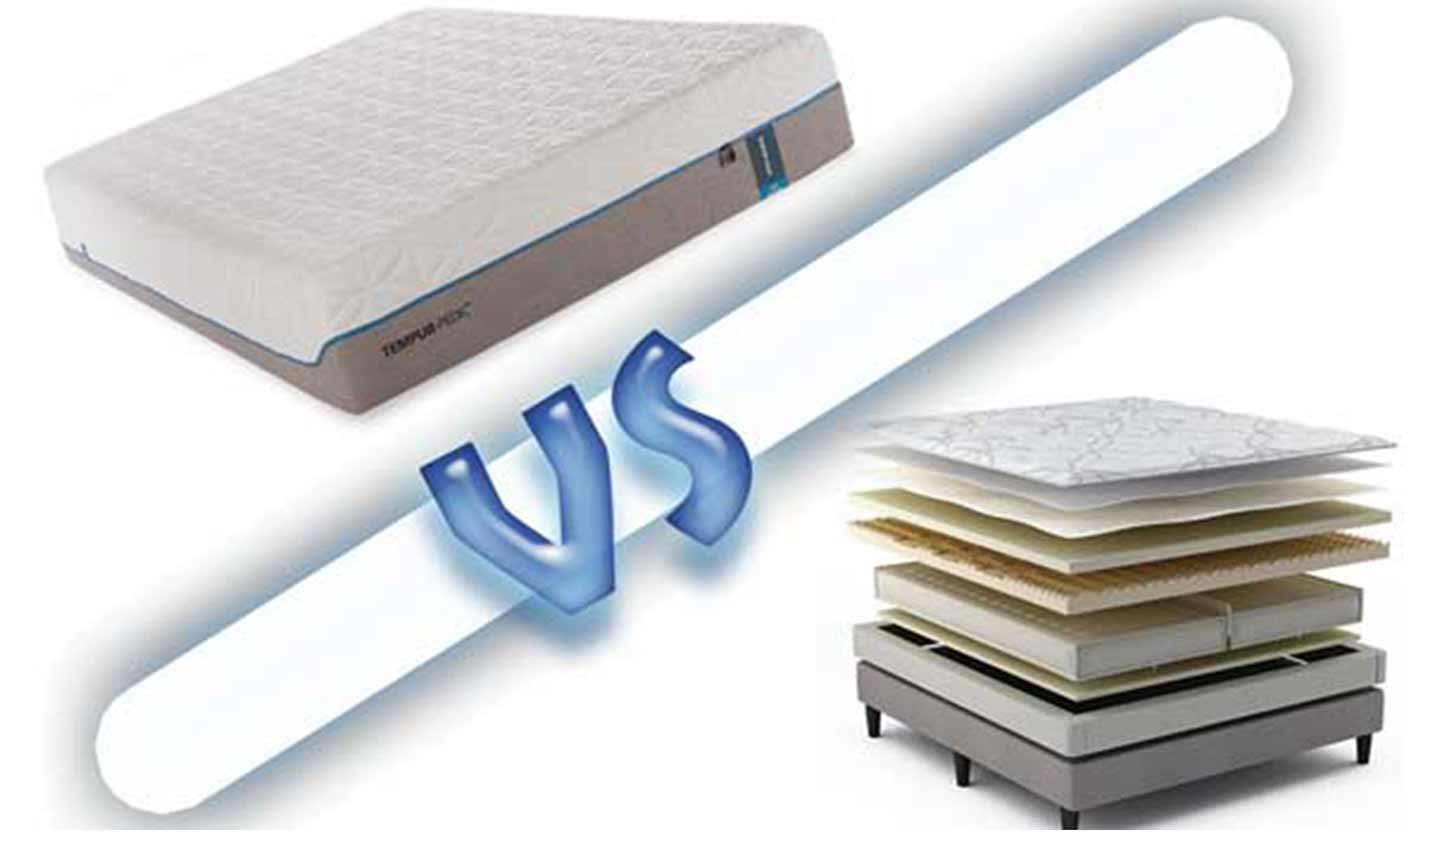 tempurpedic vs sleep number mattress which one should you buy. Black Bedroom Furniture Sets. Home Design Ideas